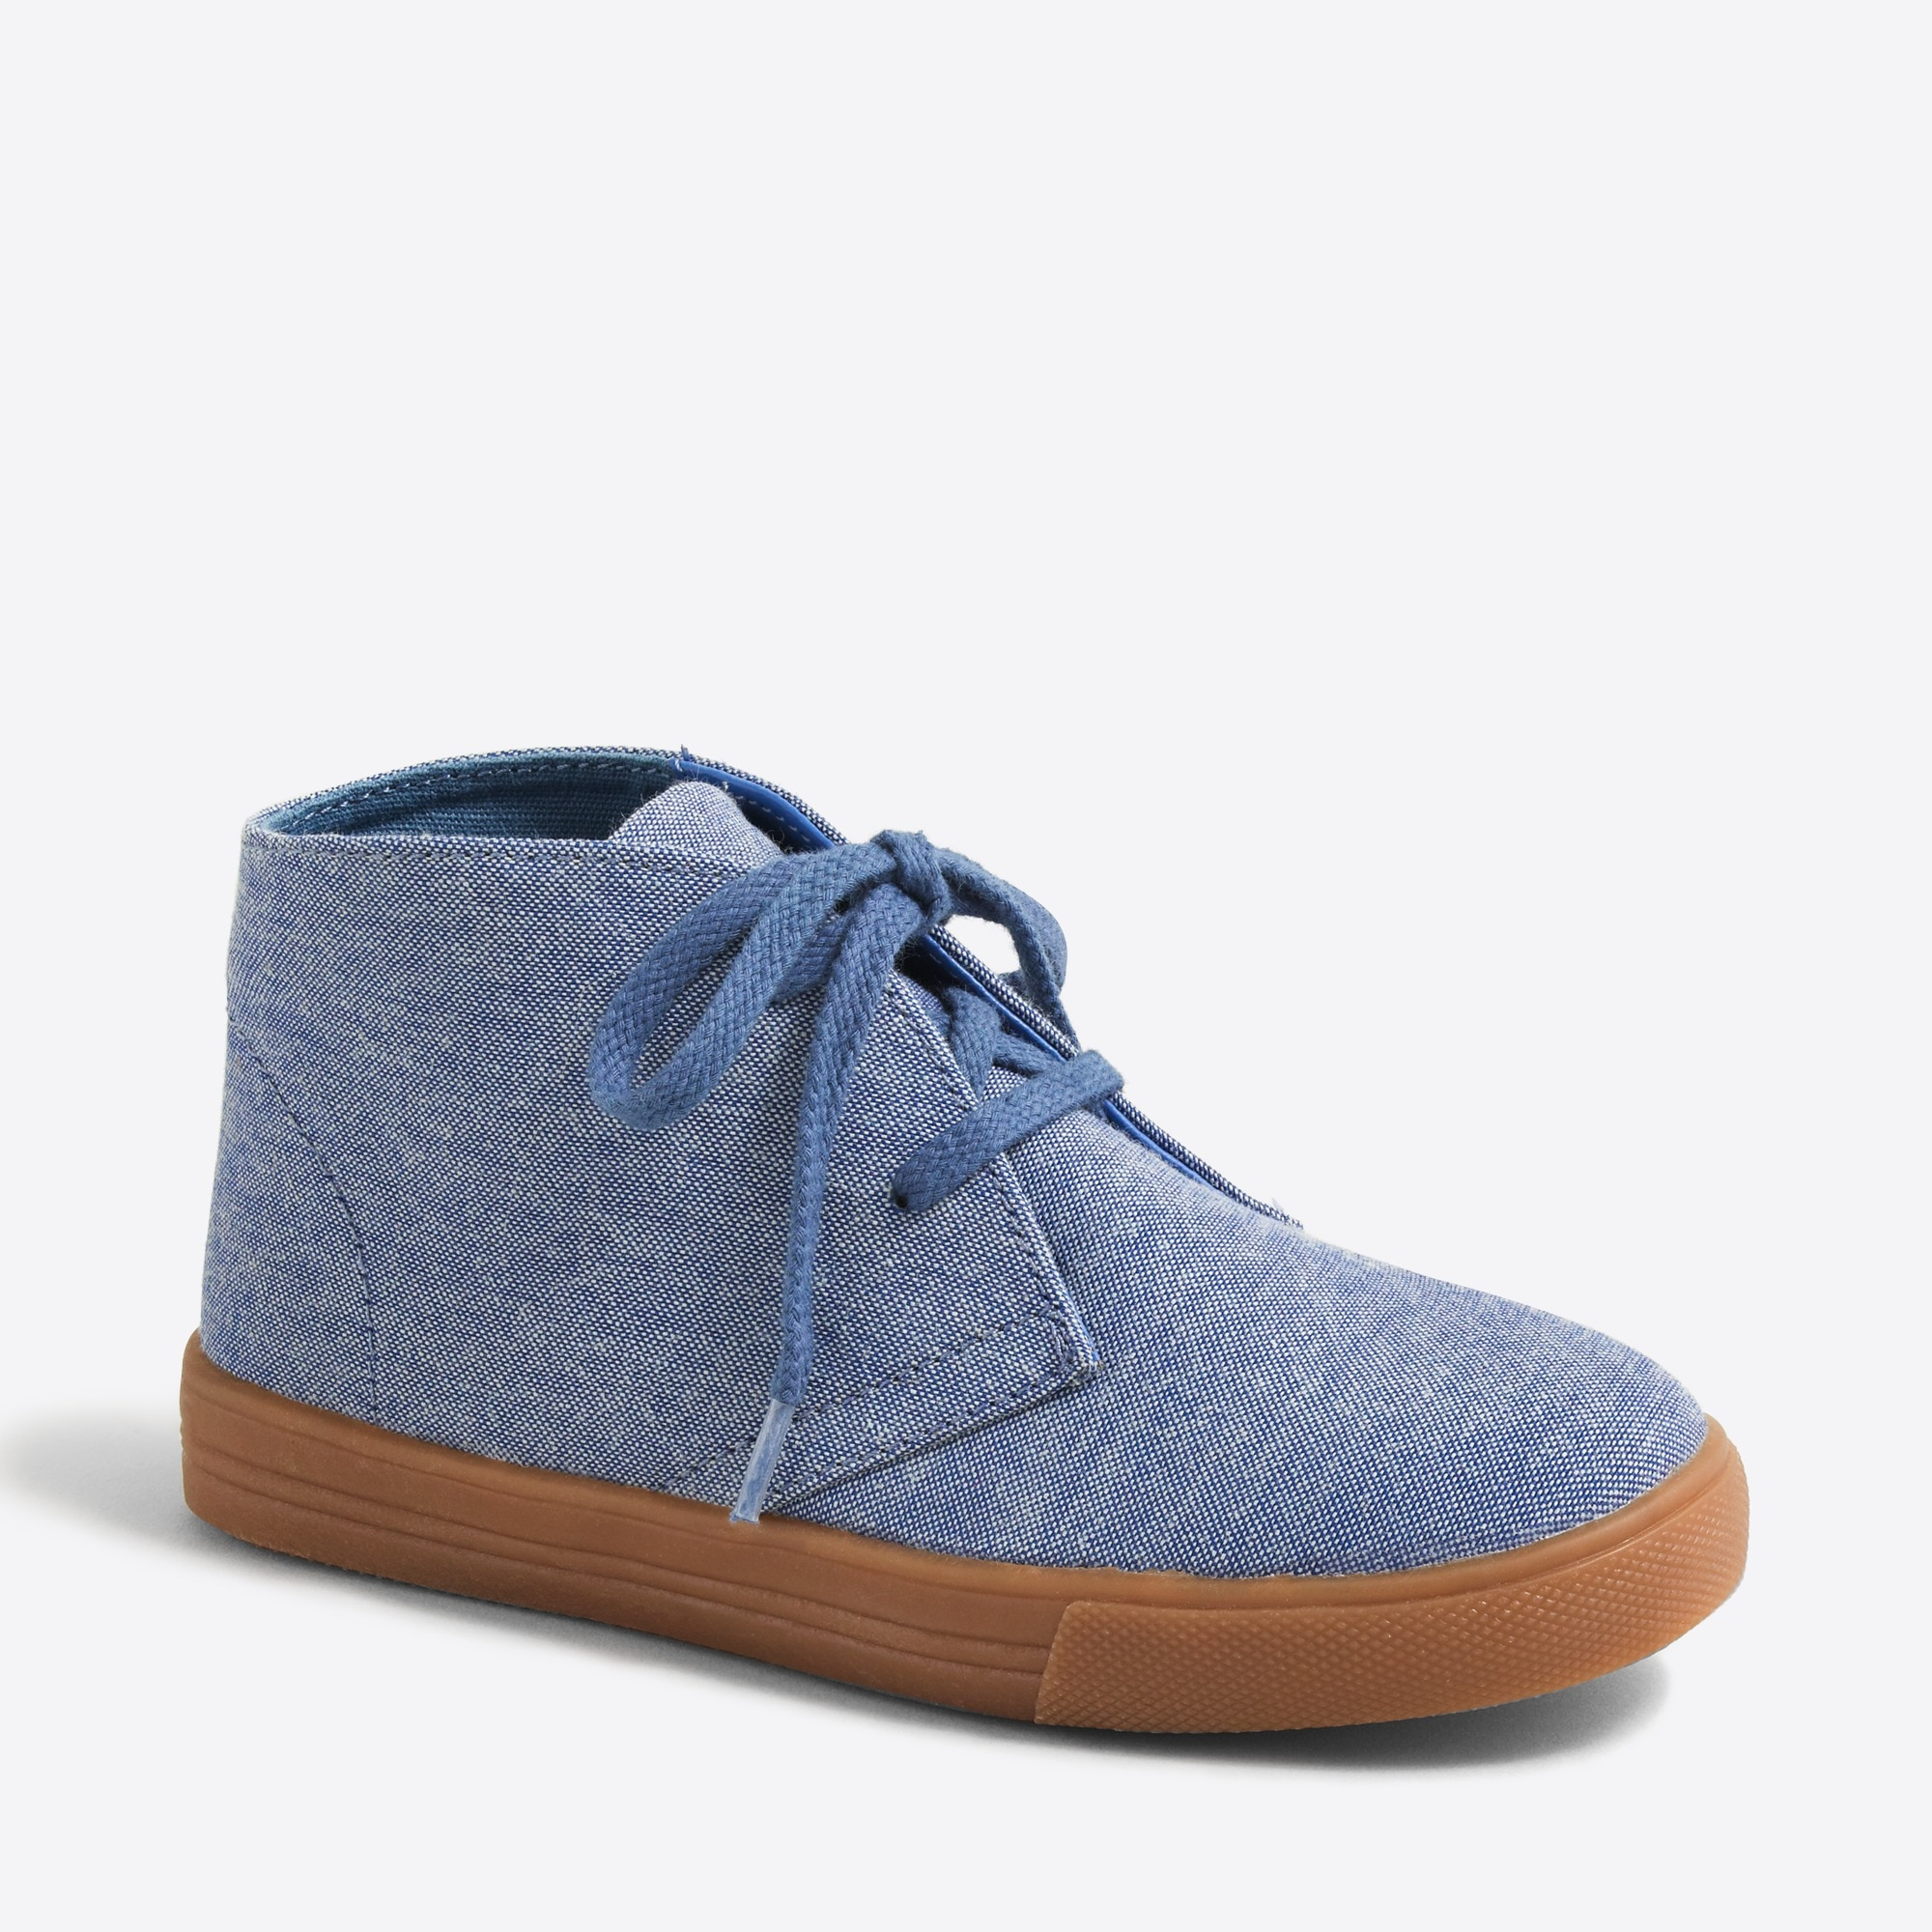 kids' canvas calvert sneakers : factoryboys shoes & socks